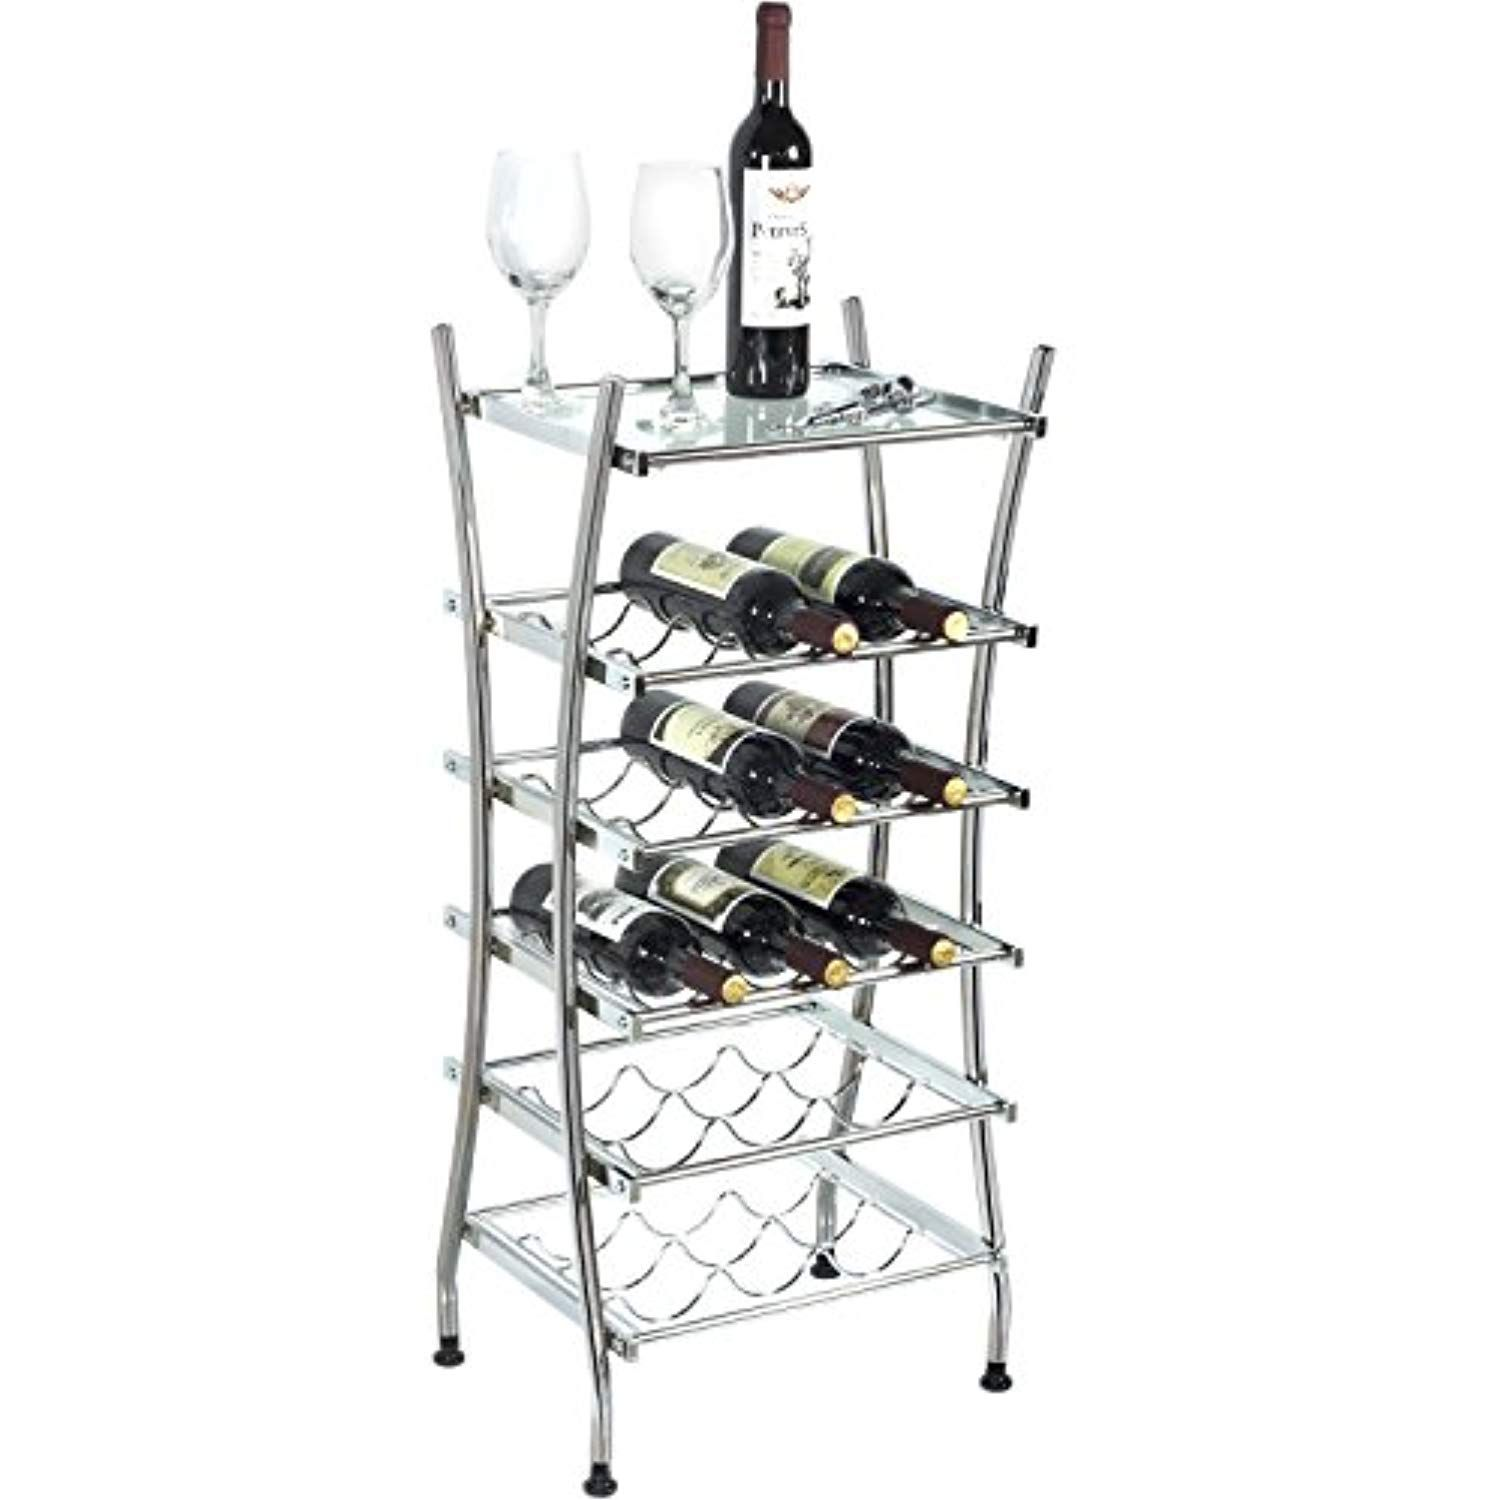 Modern Banquet Freestanding Wine Rack 15 Bottle Holder Stand With